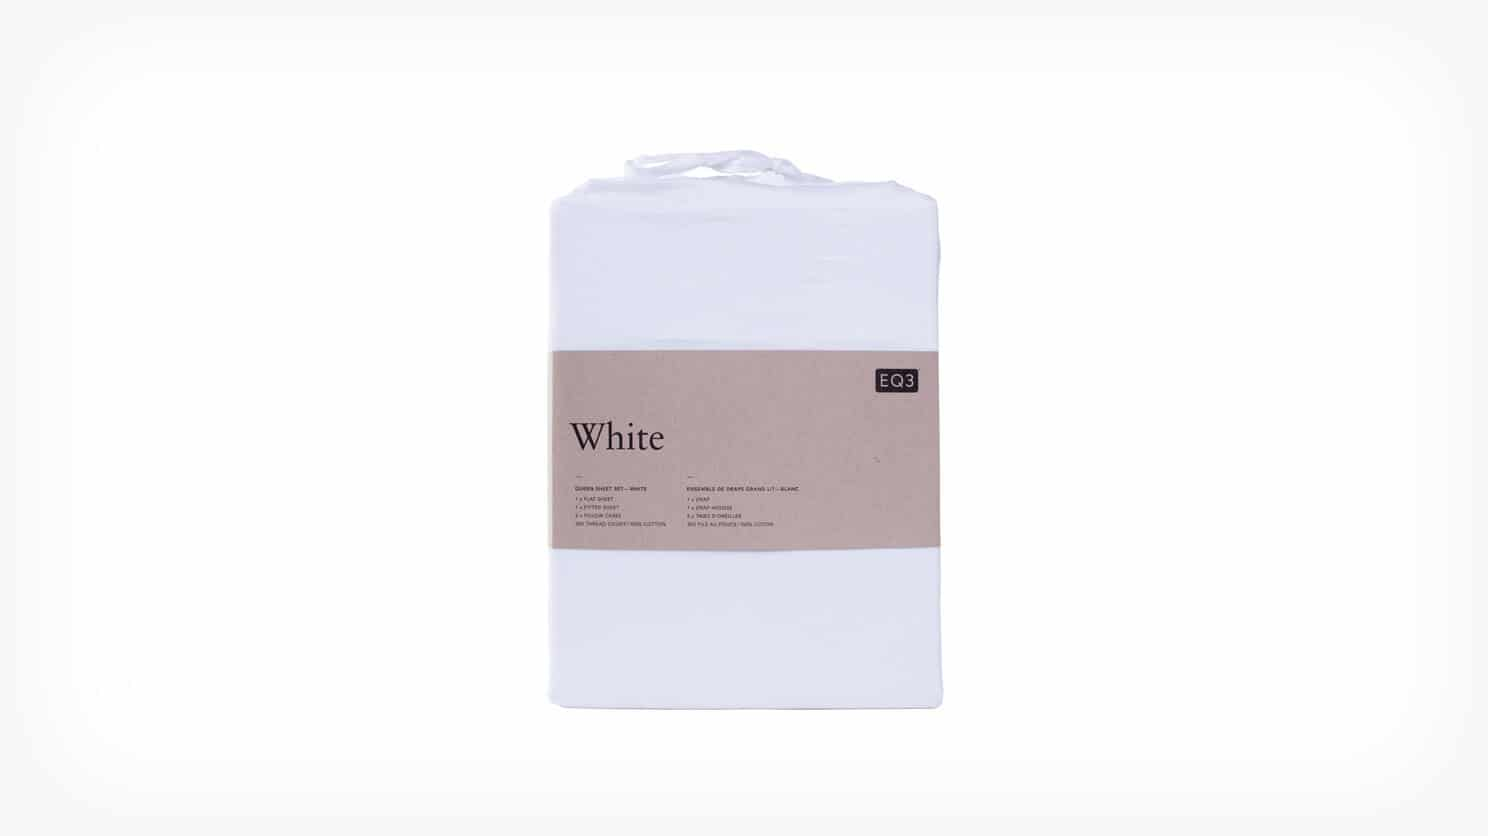 White Cotton Queen Sheet Set Packaged